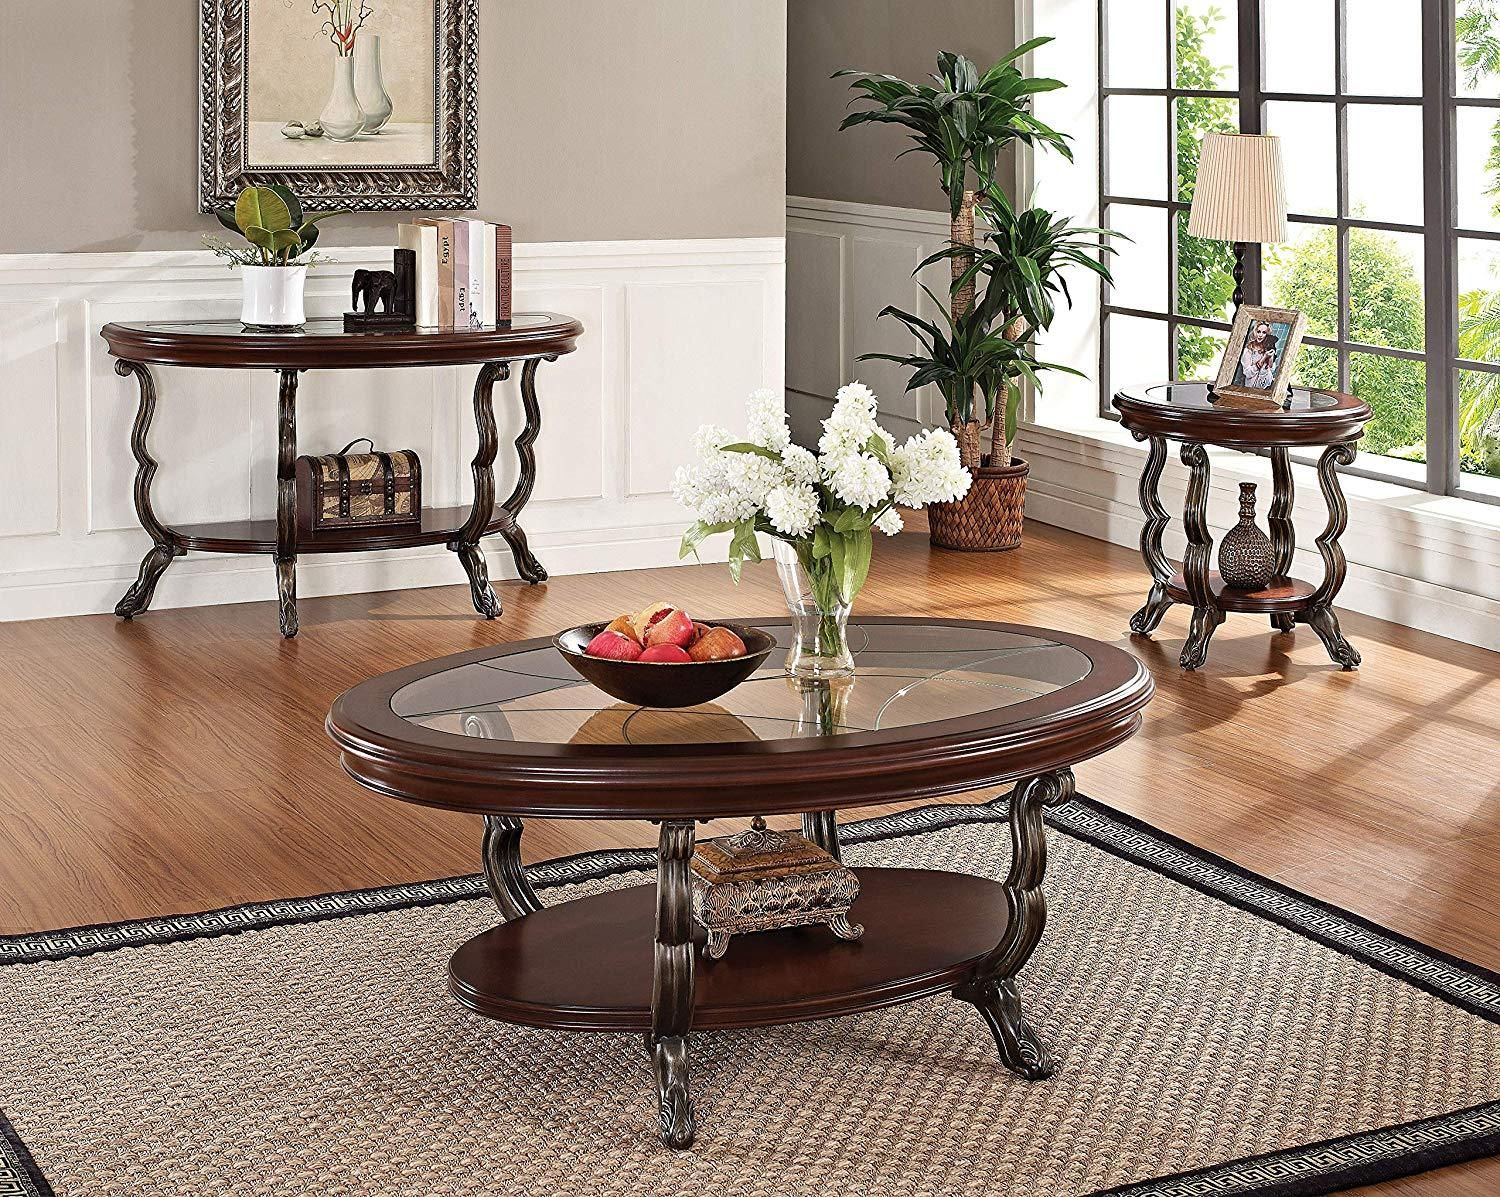 Bavol Occasional Collection In 2021 Coffee Table Coffee Table Setting 3 Piece Coffee Table Set [ 1197 x 1500 Pixel ]